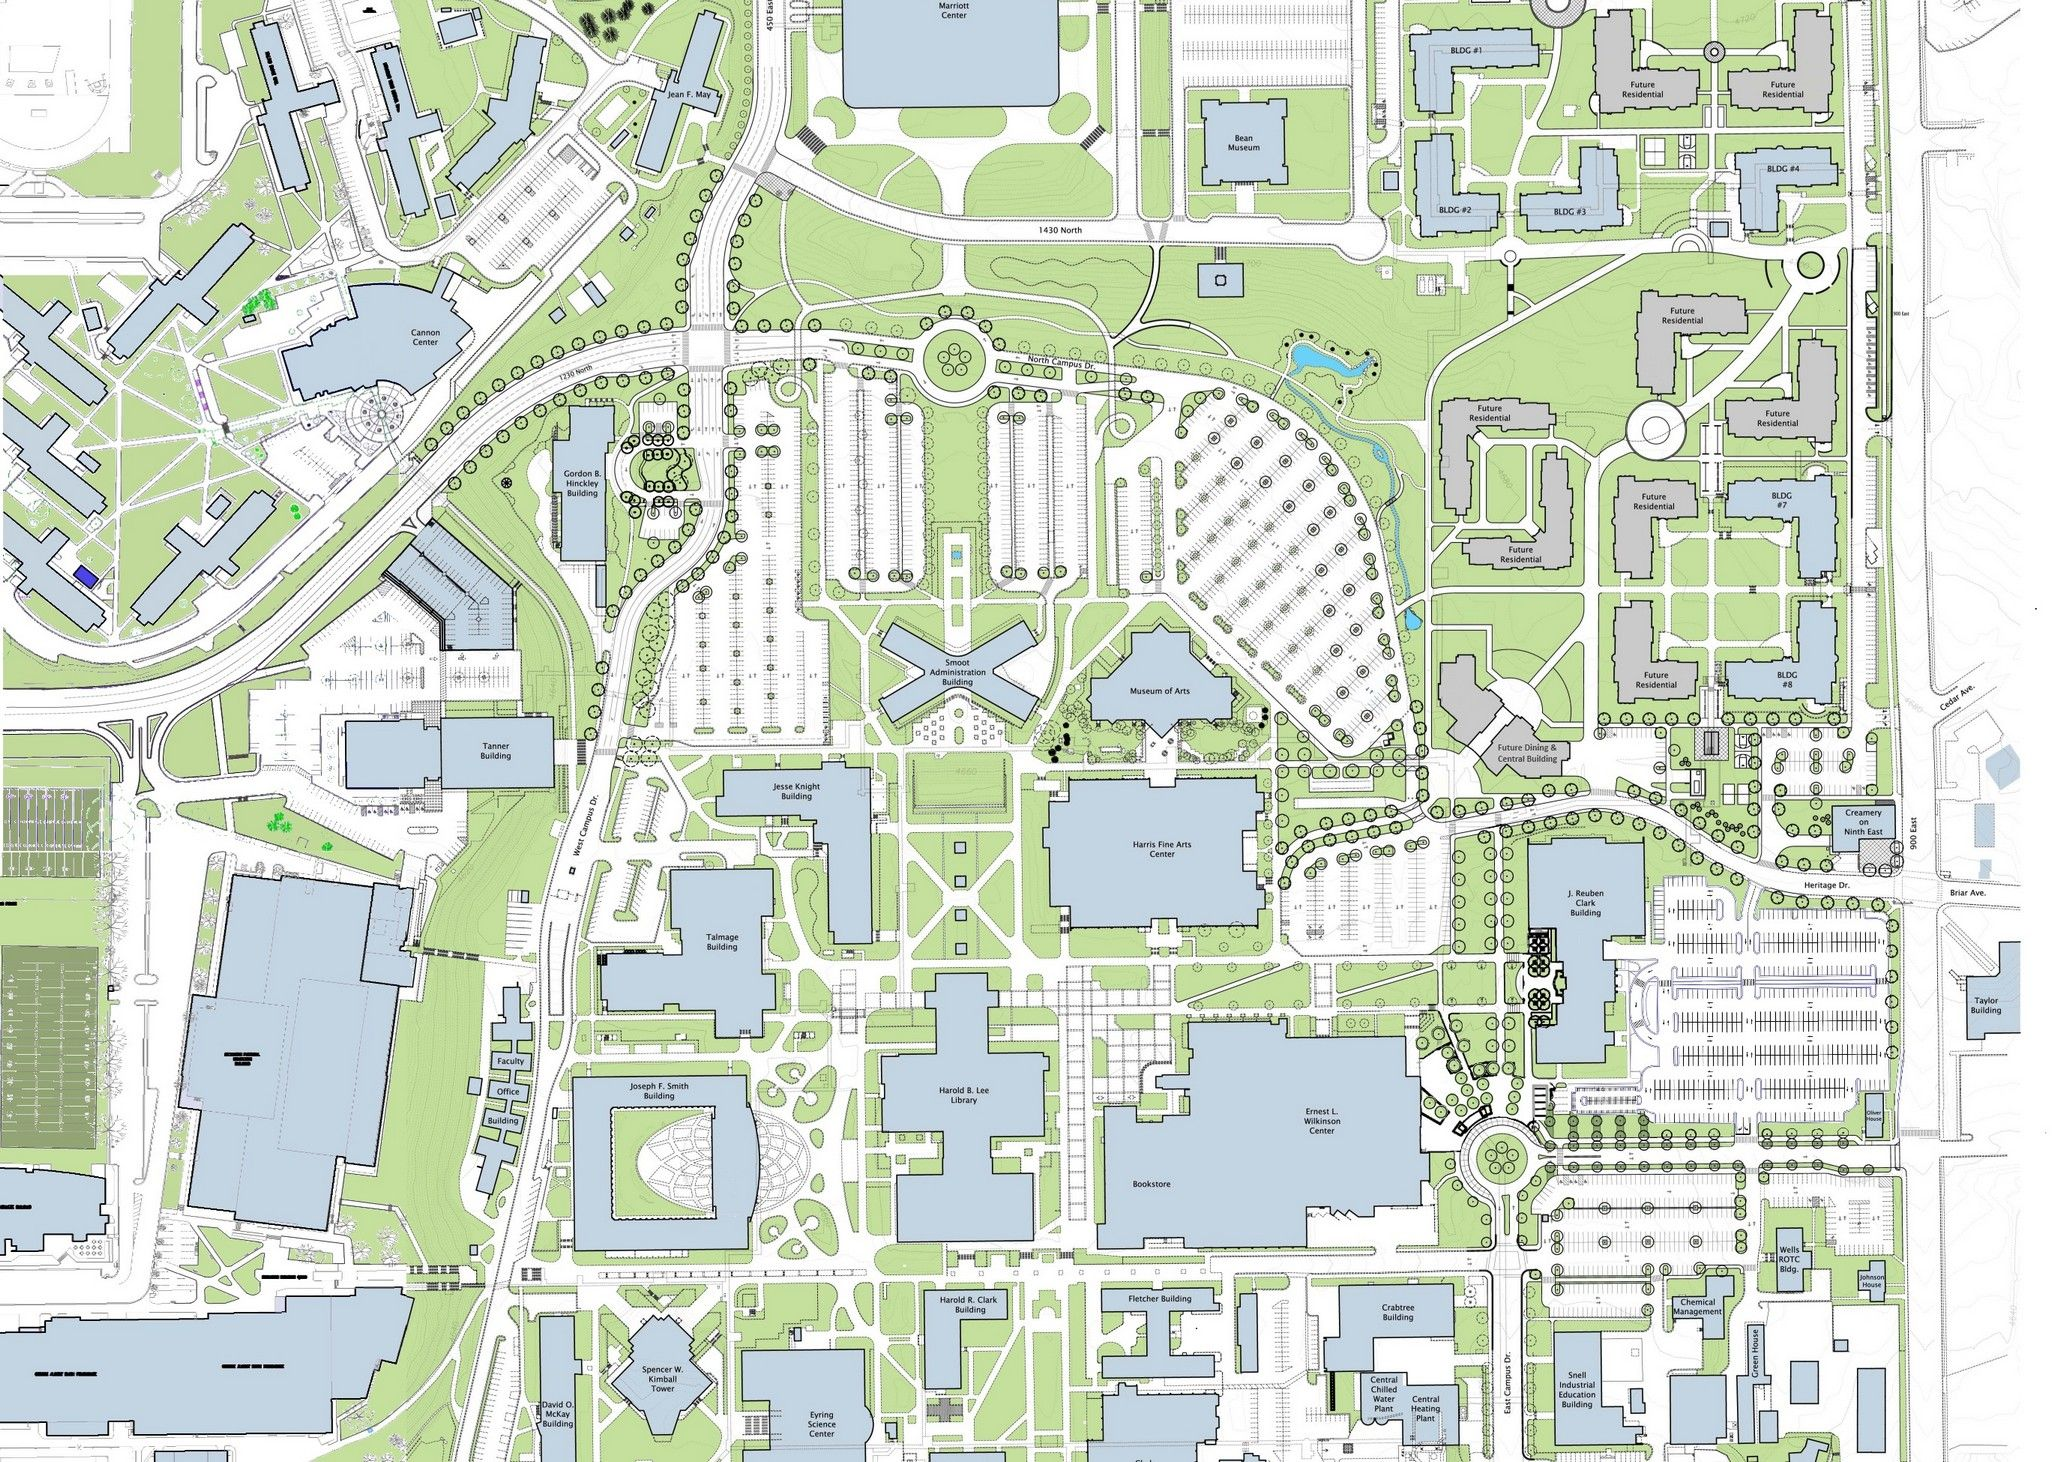 completed view of the campus unification project   brigham young  - completed view of the campus unification project   brigham younguniversity   pinterest